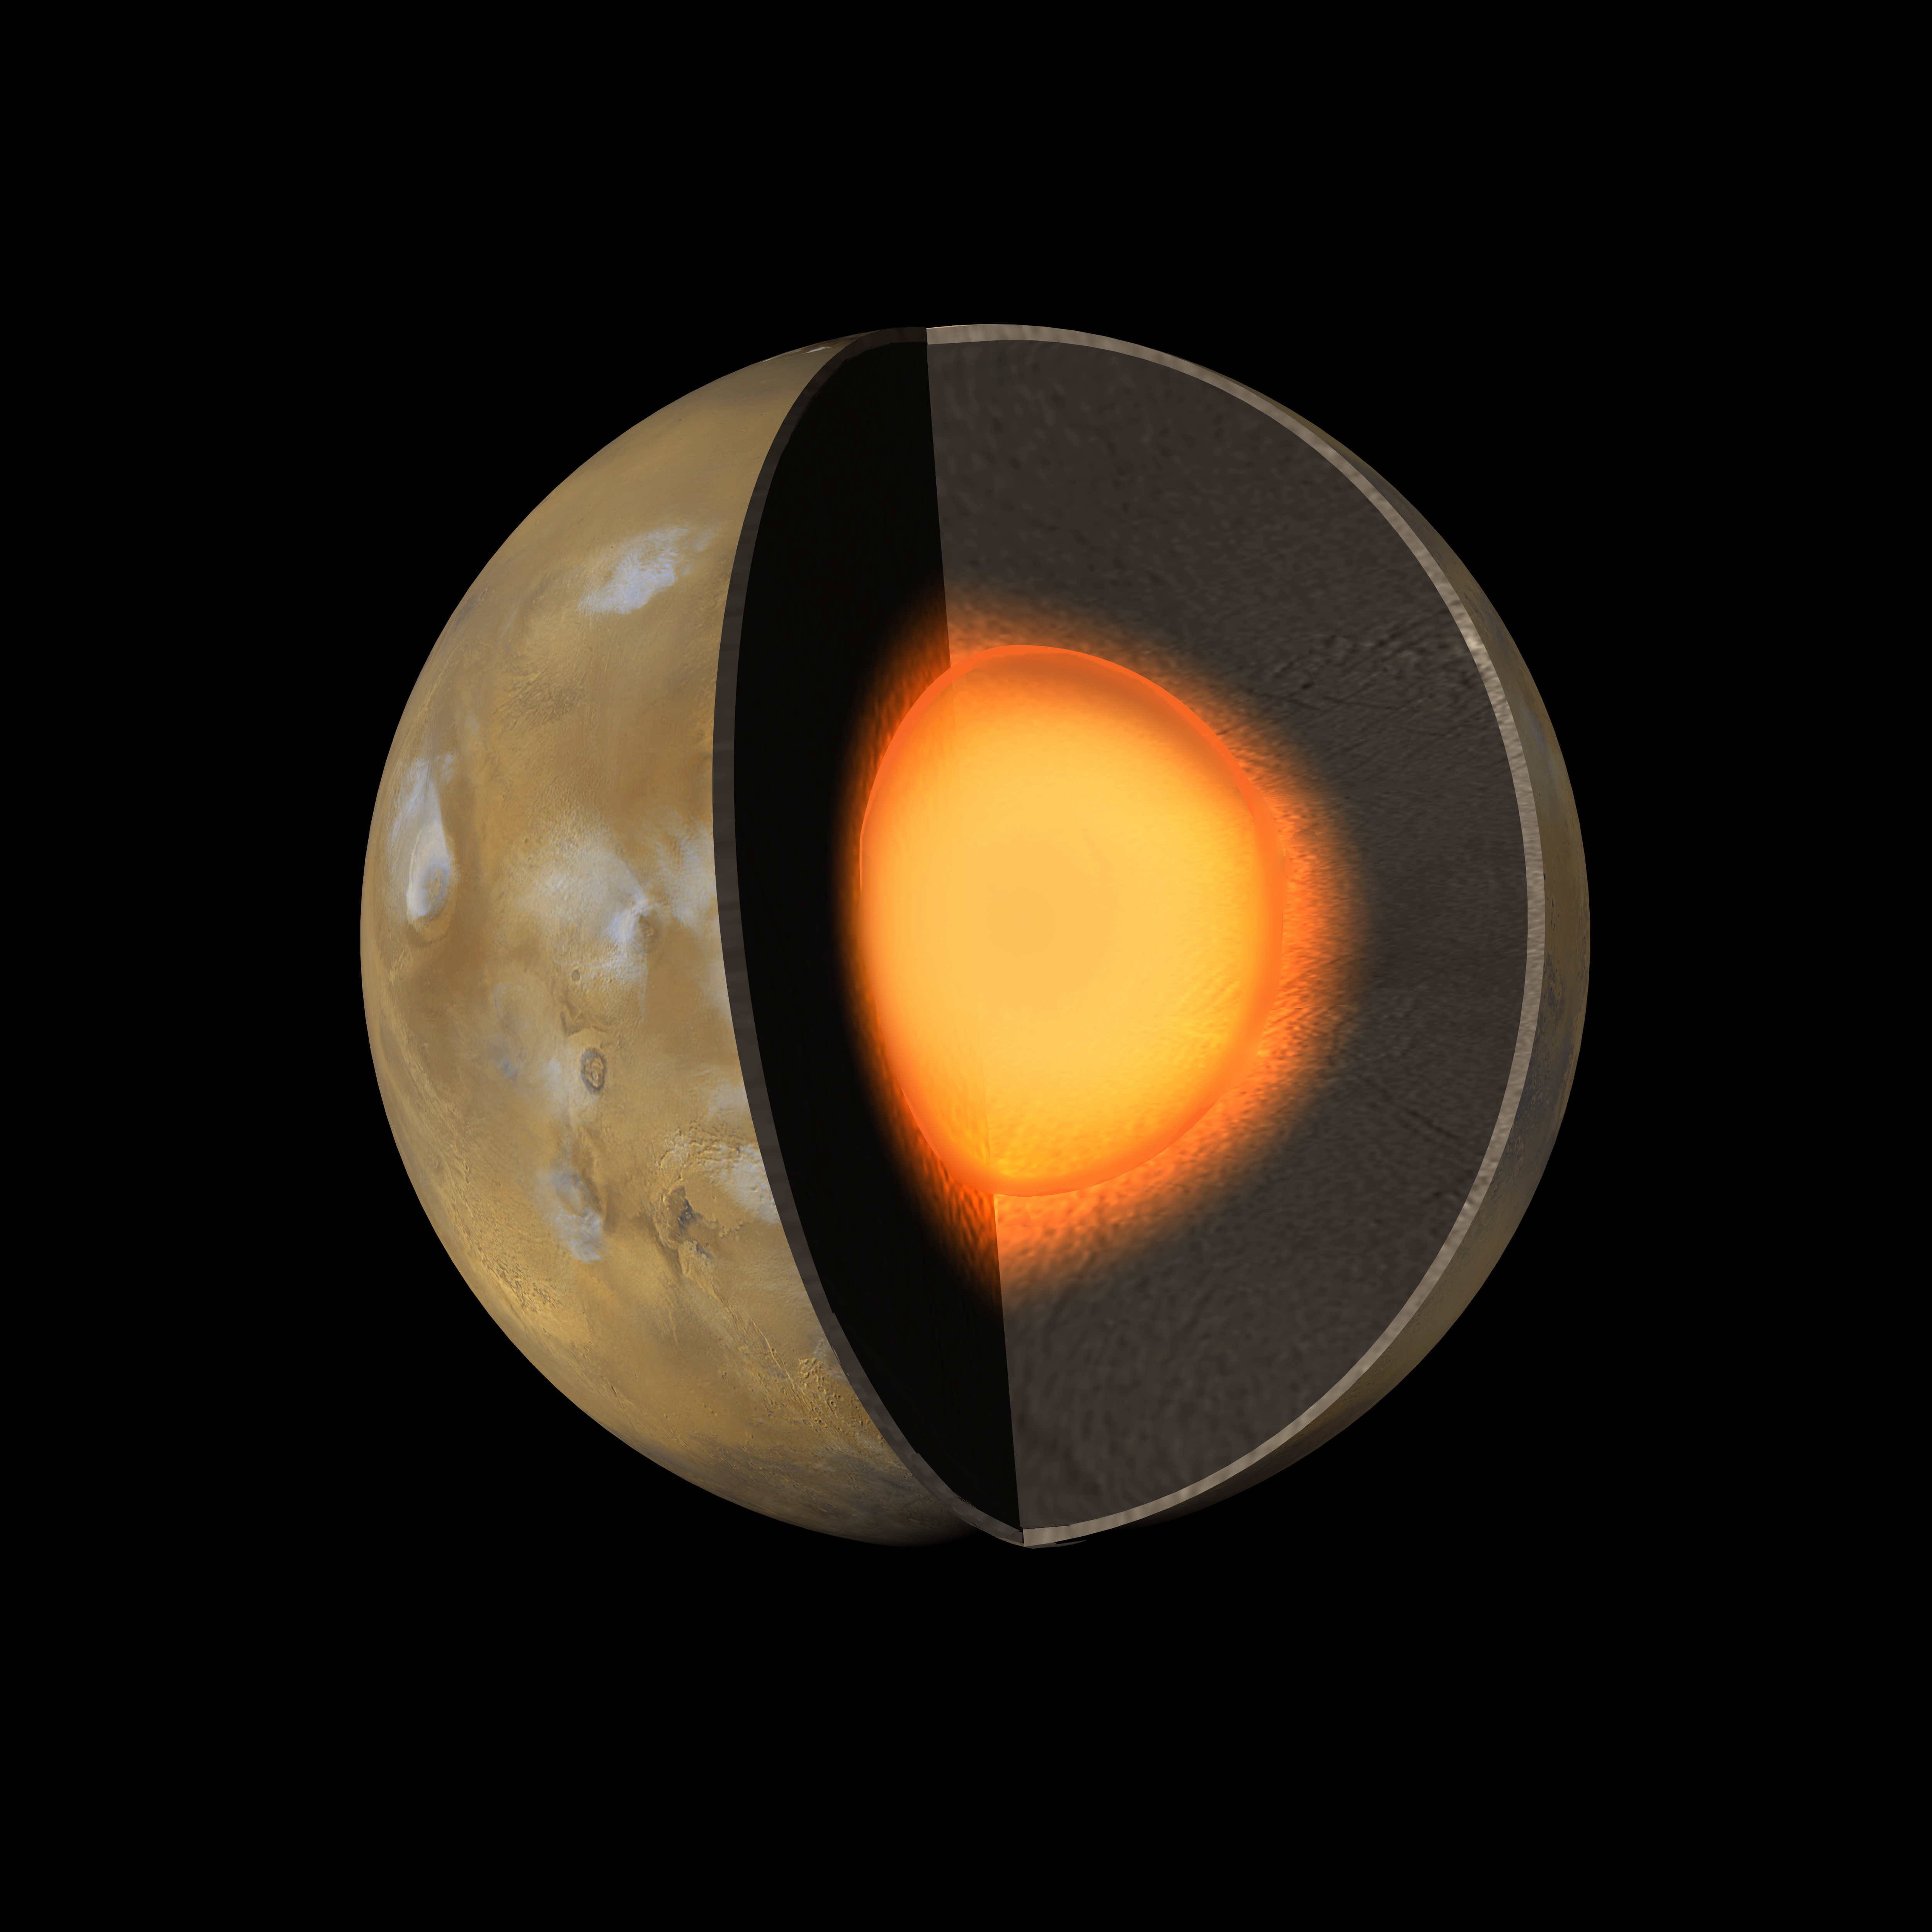 planet venus core - photo #27